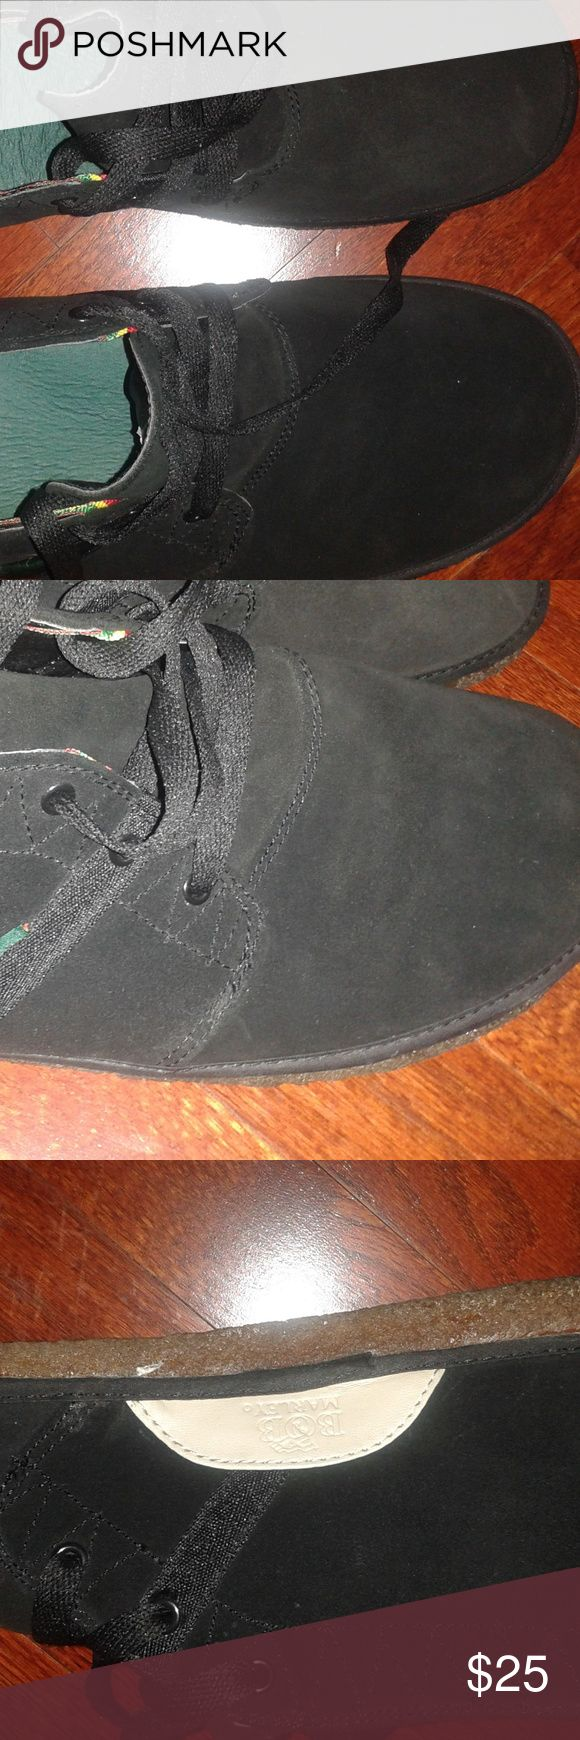 Men's Bob Marley desert boots. sz.11 Men's black pair of desert boots, by Bob Marley. genuine suede leather sz.11 excellent condition Bob Marley Shoes Chukka Boots